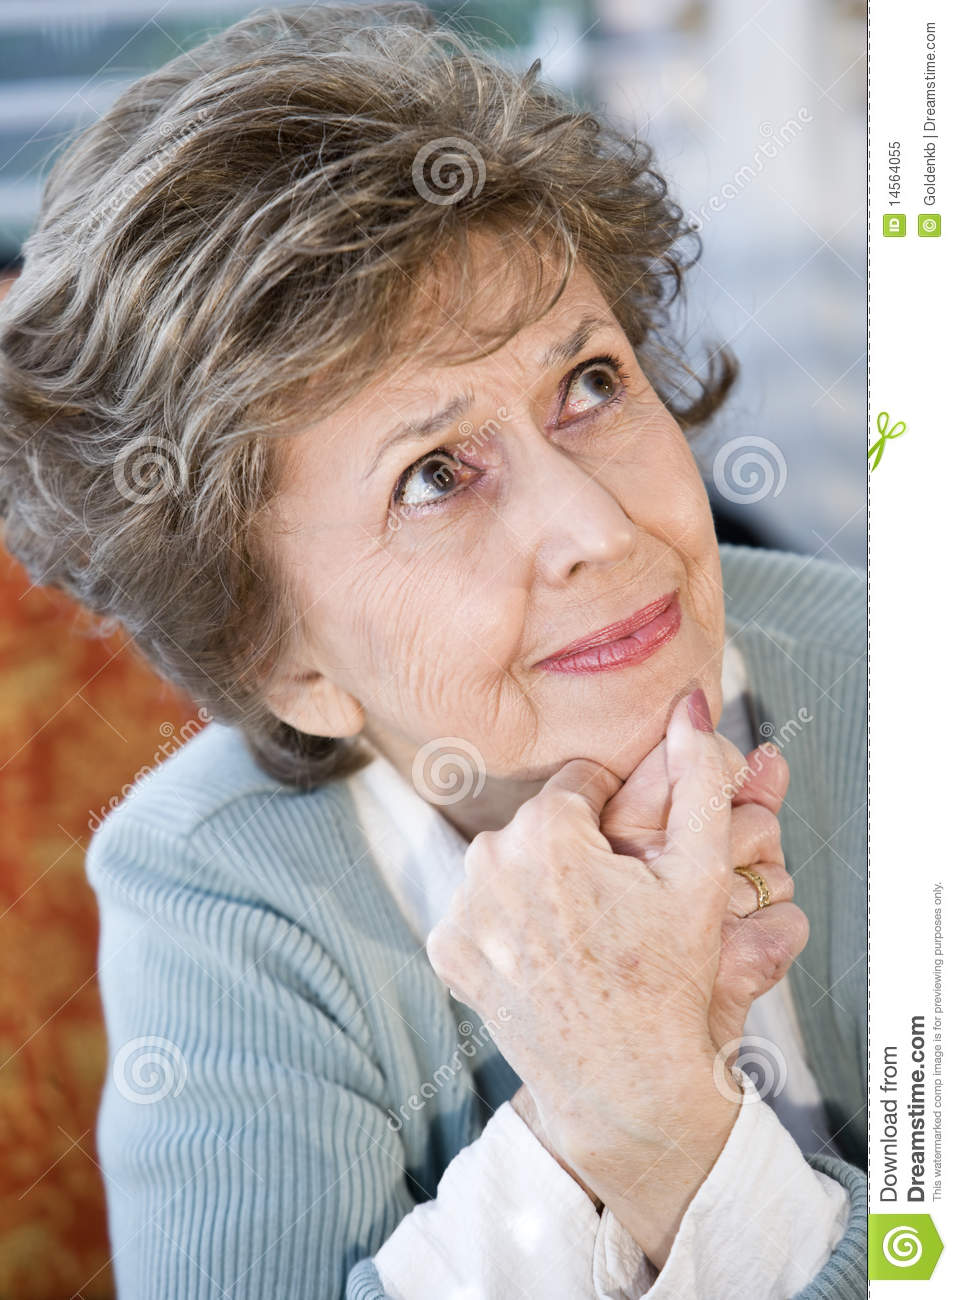 Face of serious elderly woman looking up